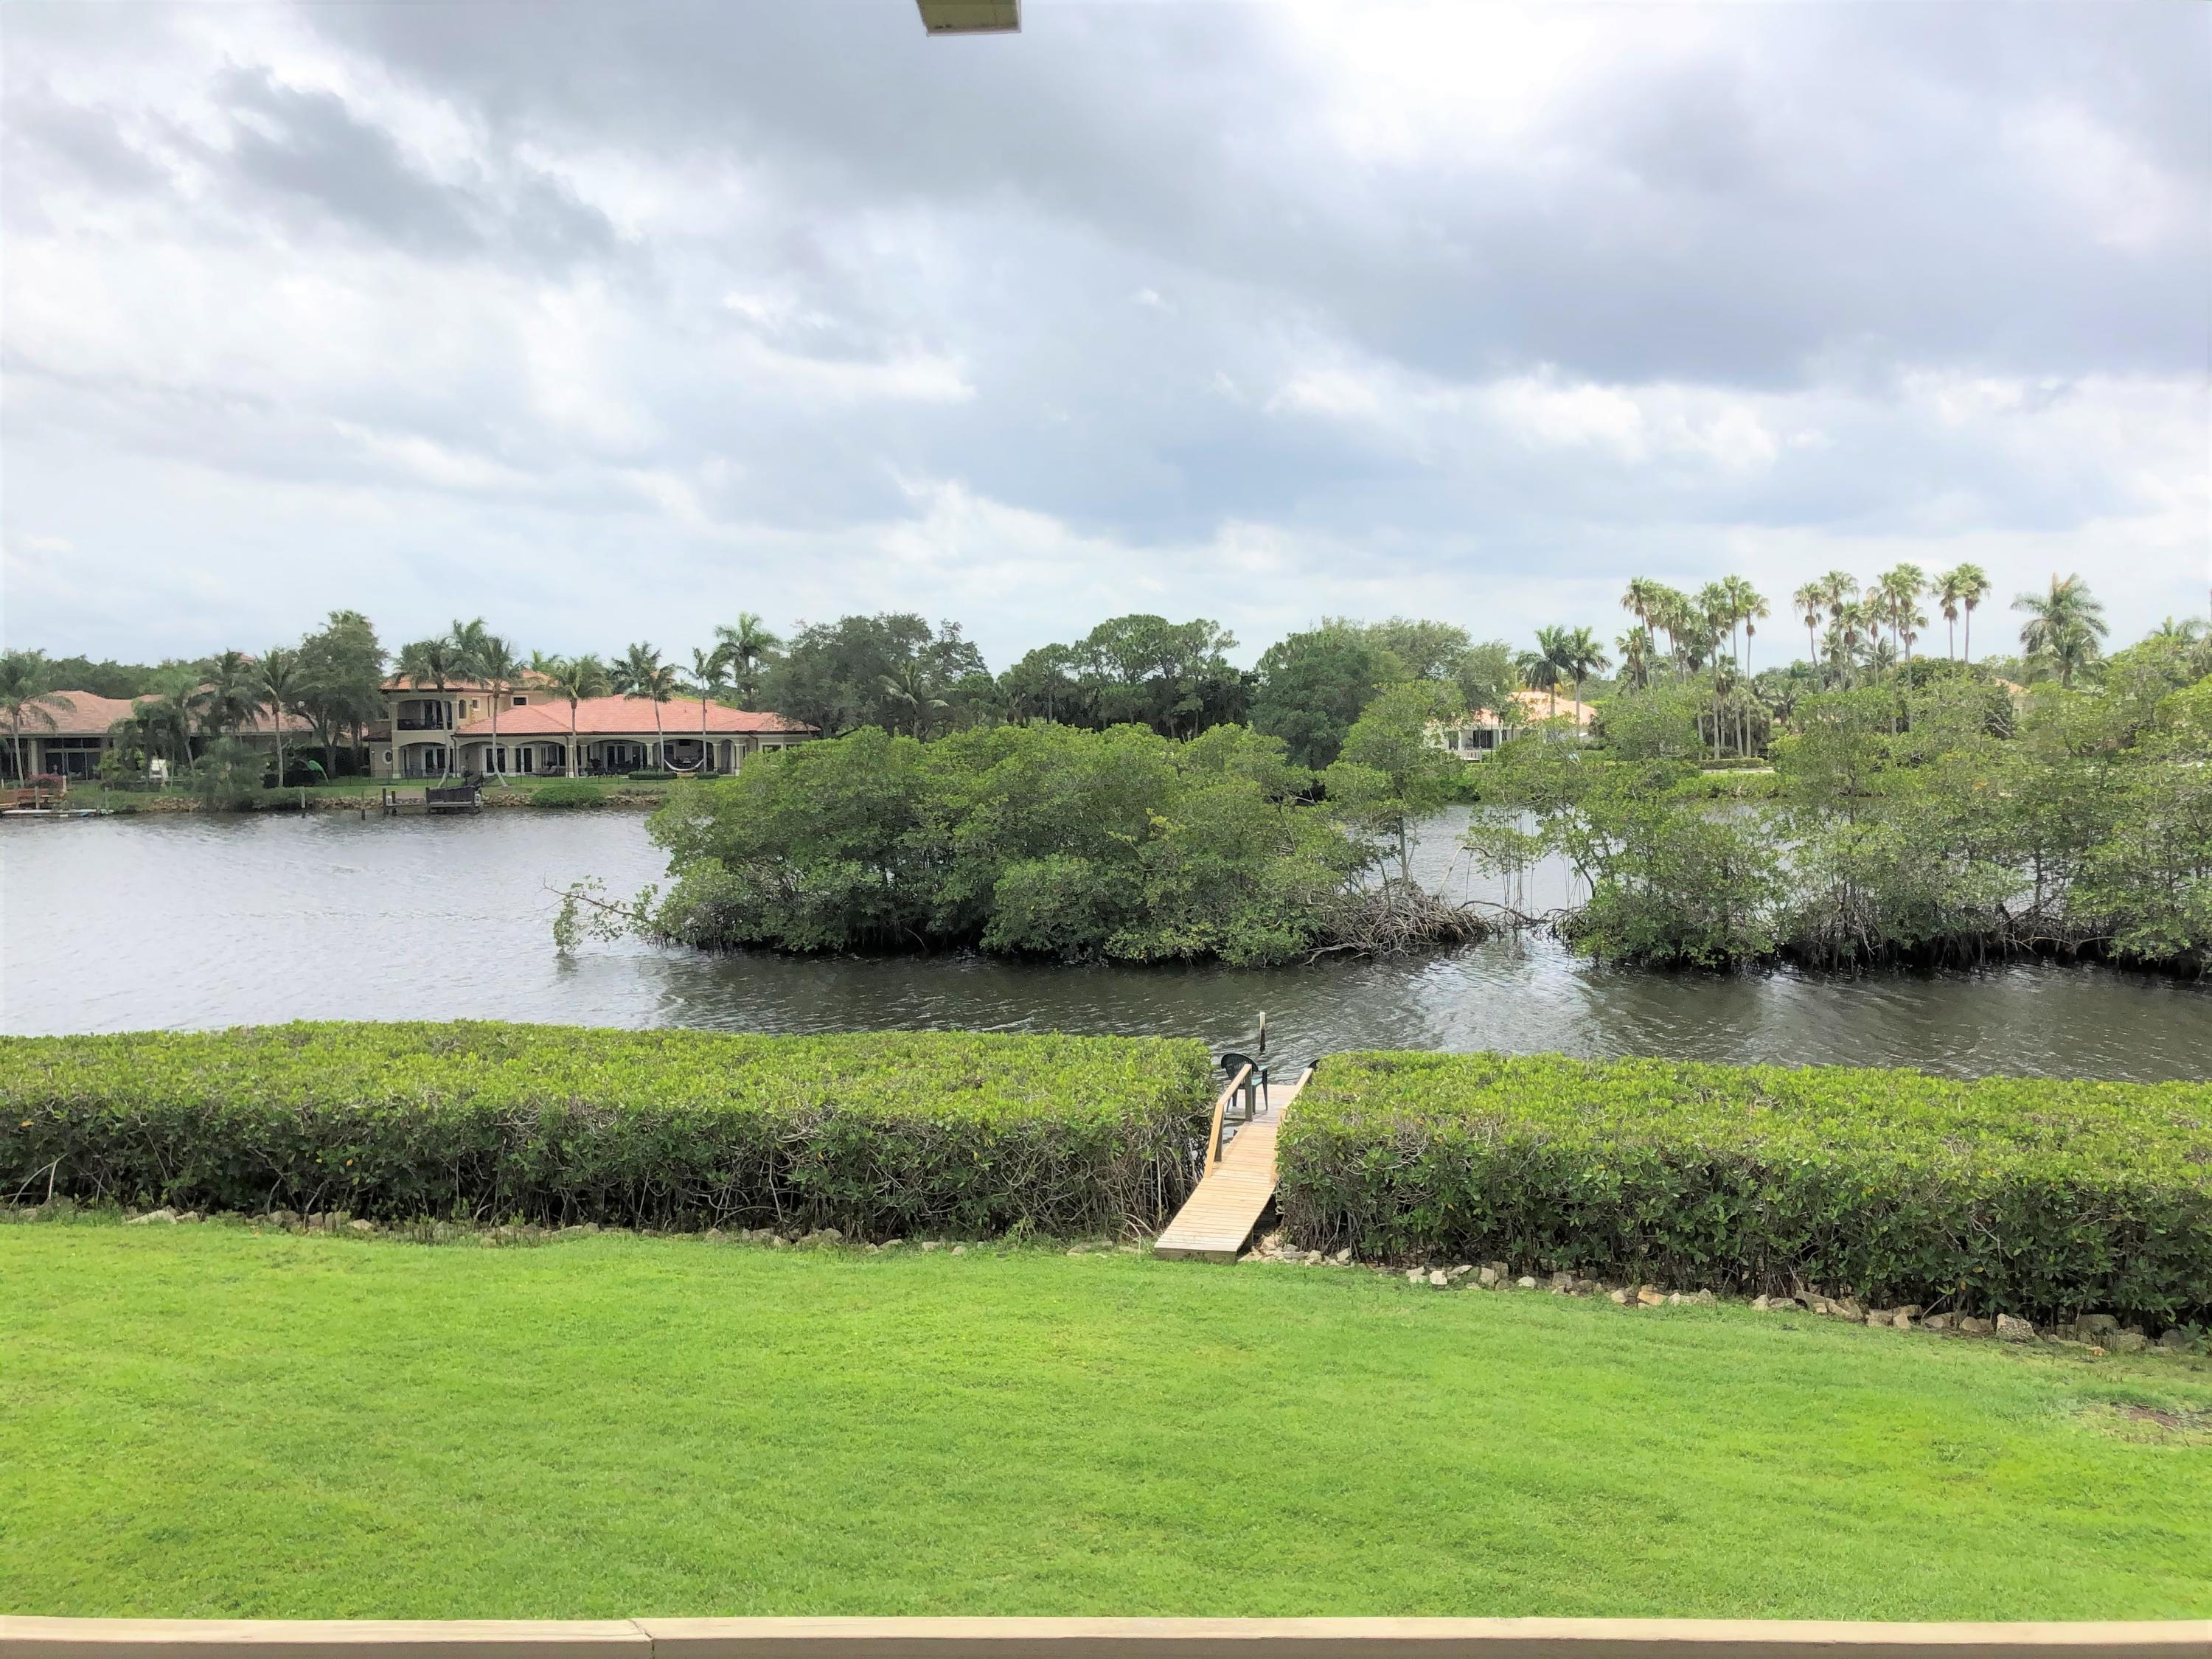 9160 Riverfront Ter Terrace,Tequesta,Florida 33469,3 Bedrooms Bedrooms,2 BathroomsBathrooms,Condo/coop,Riverfront Ter,RX-10618487